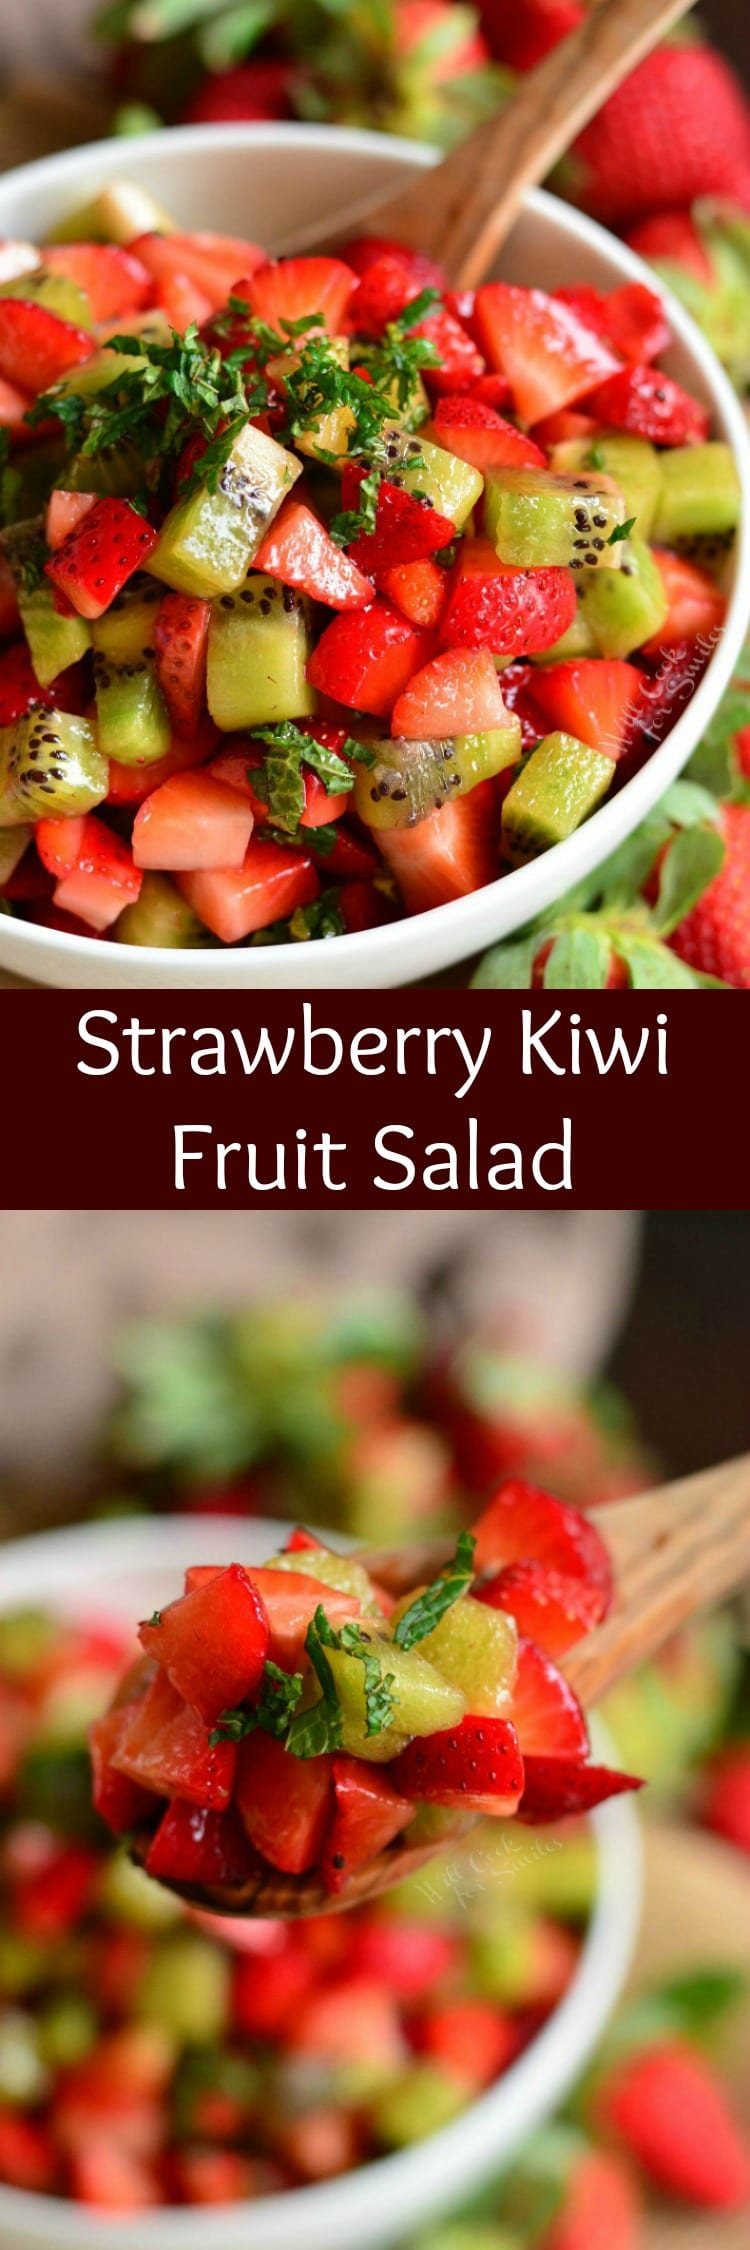 Strawberry Kiwi Fruit Salad in a bowl collage